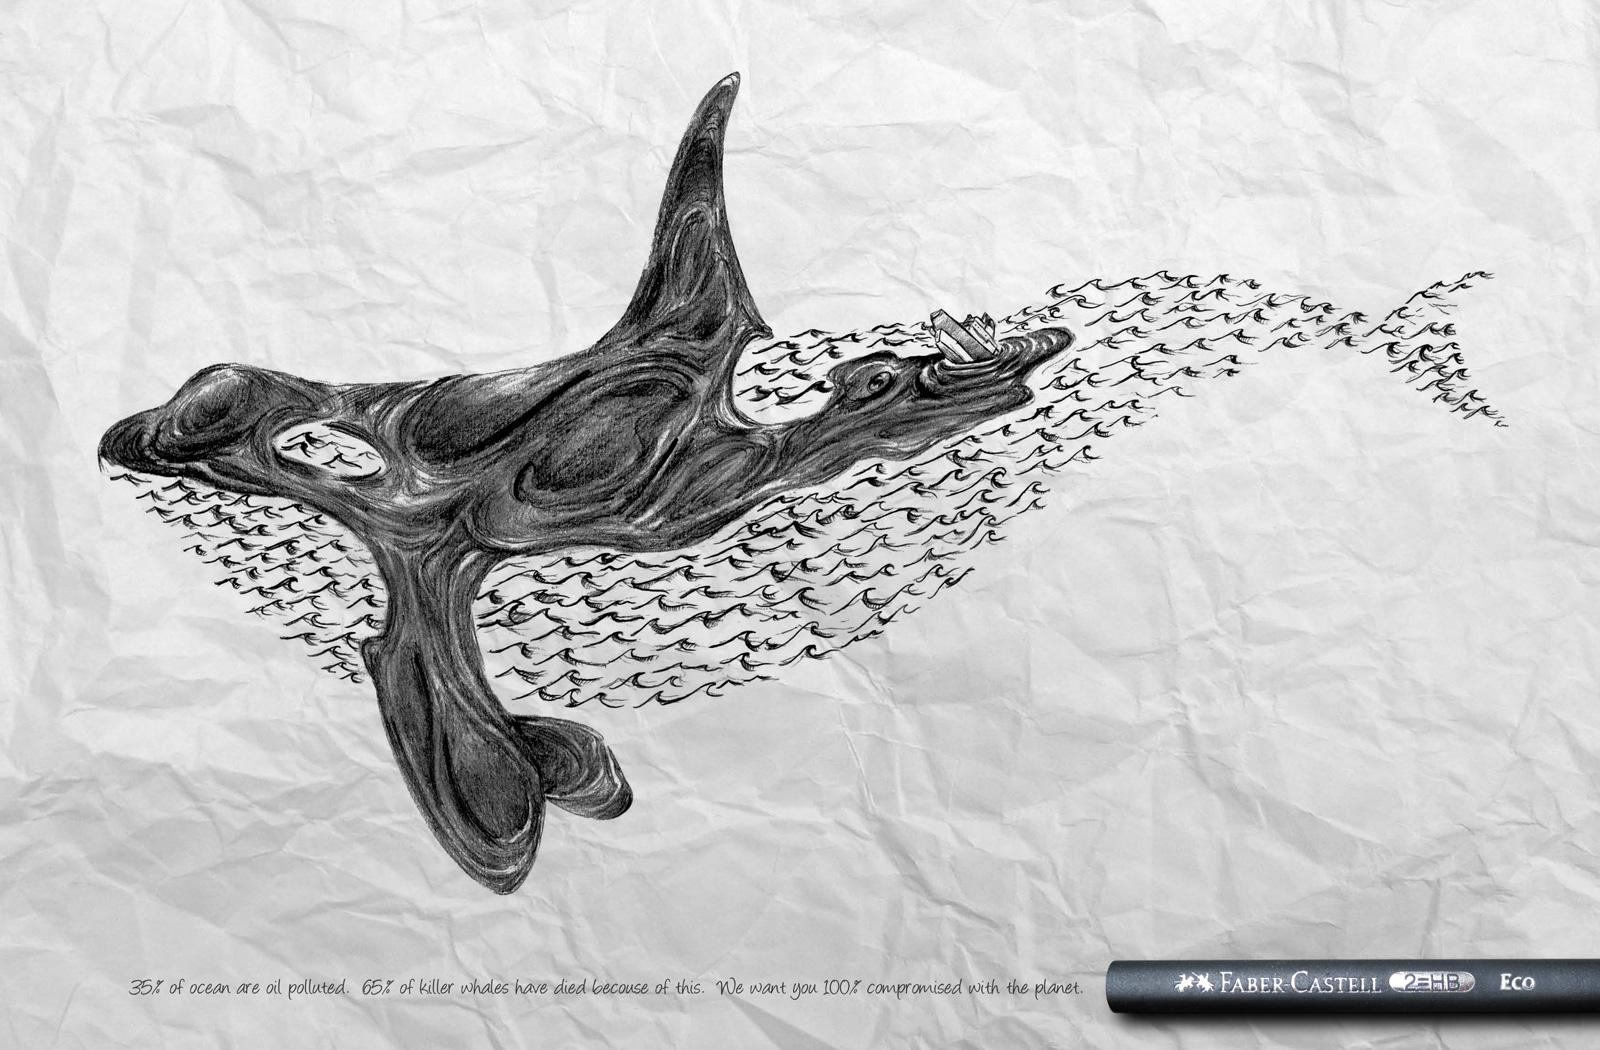 Faber-Castell Print Ad -  Whale